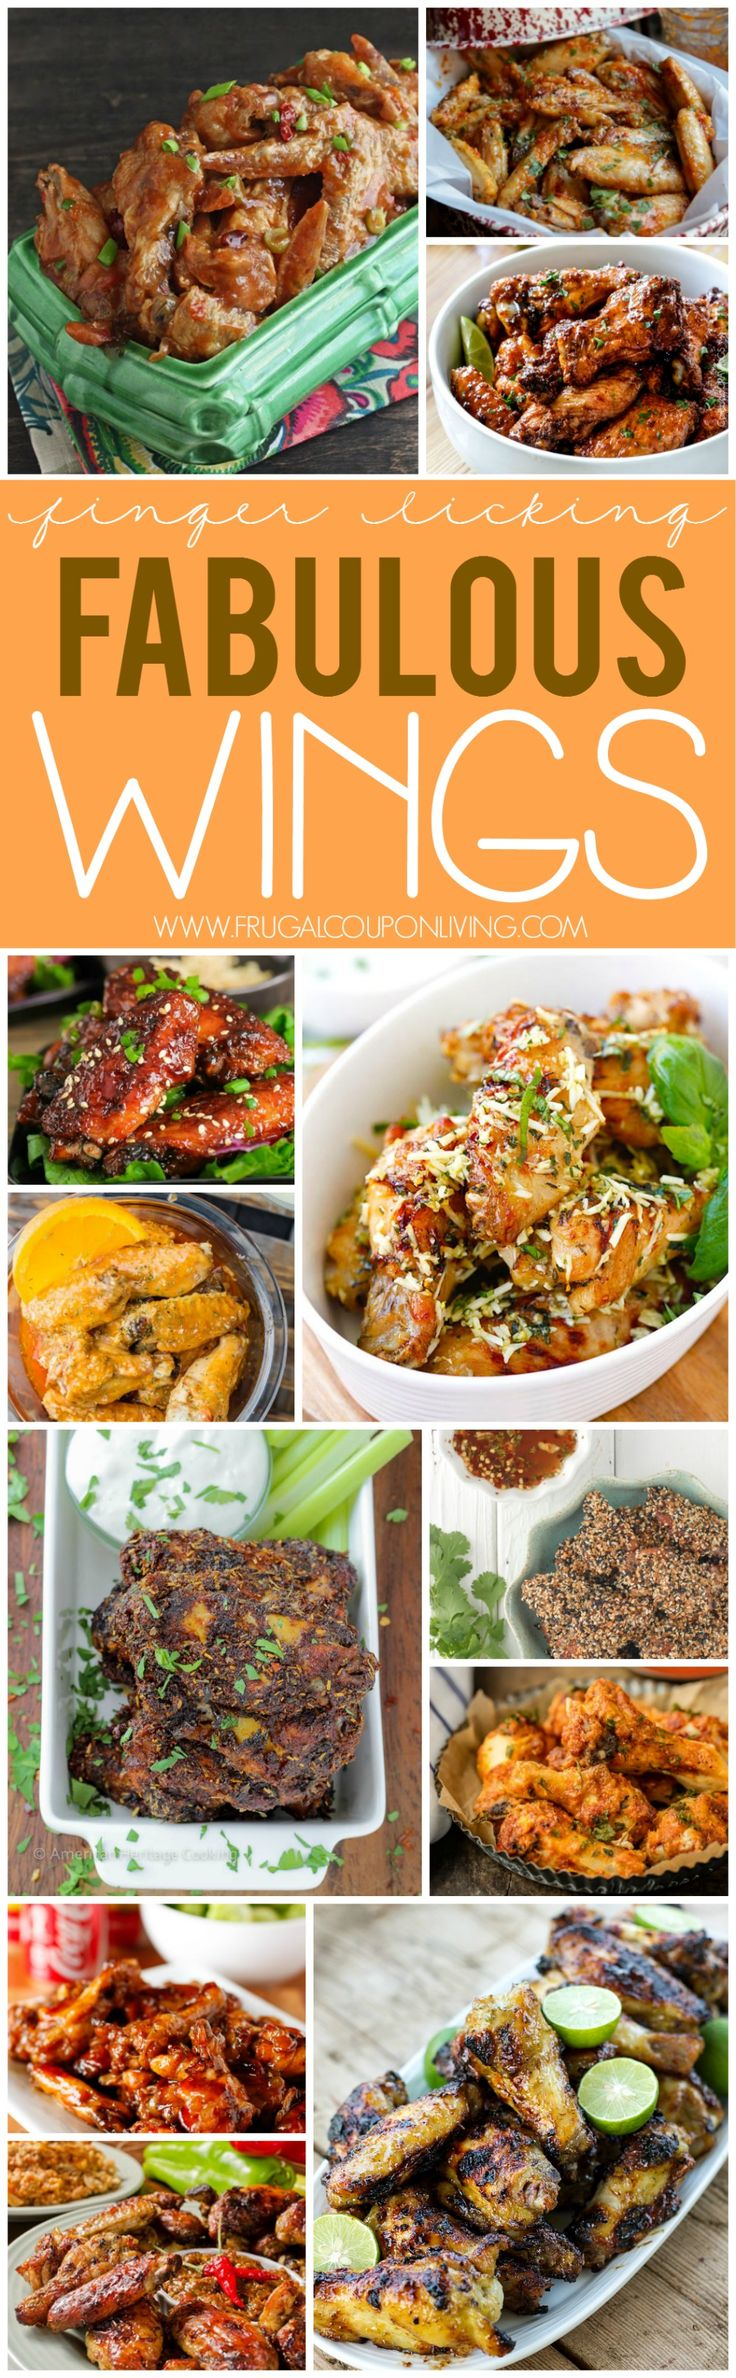 Finger Licking Fabulous Wings on Frugal Coupon Living - Sweet, Salty, Savory, Bake, Fried, in the Crock Pot, To Die For and more These Wing Recipes are perfect for a tailgate, home party and more!